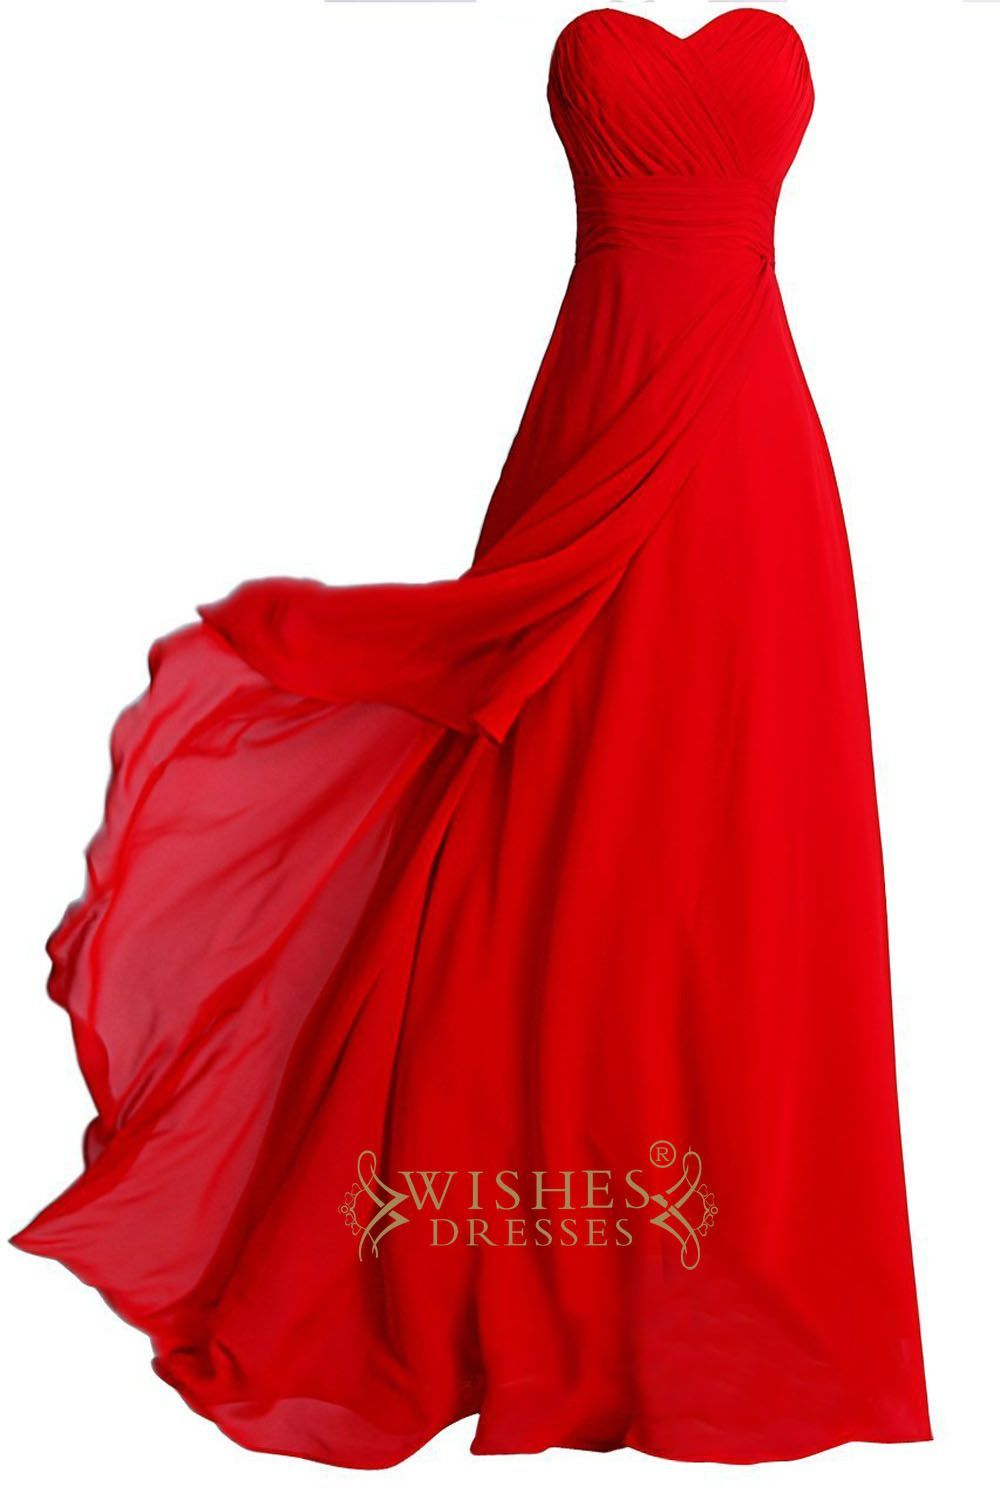 Aline red simple bridesmaid dresses with ruching bodice formal gown